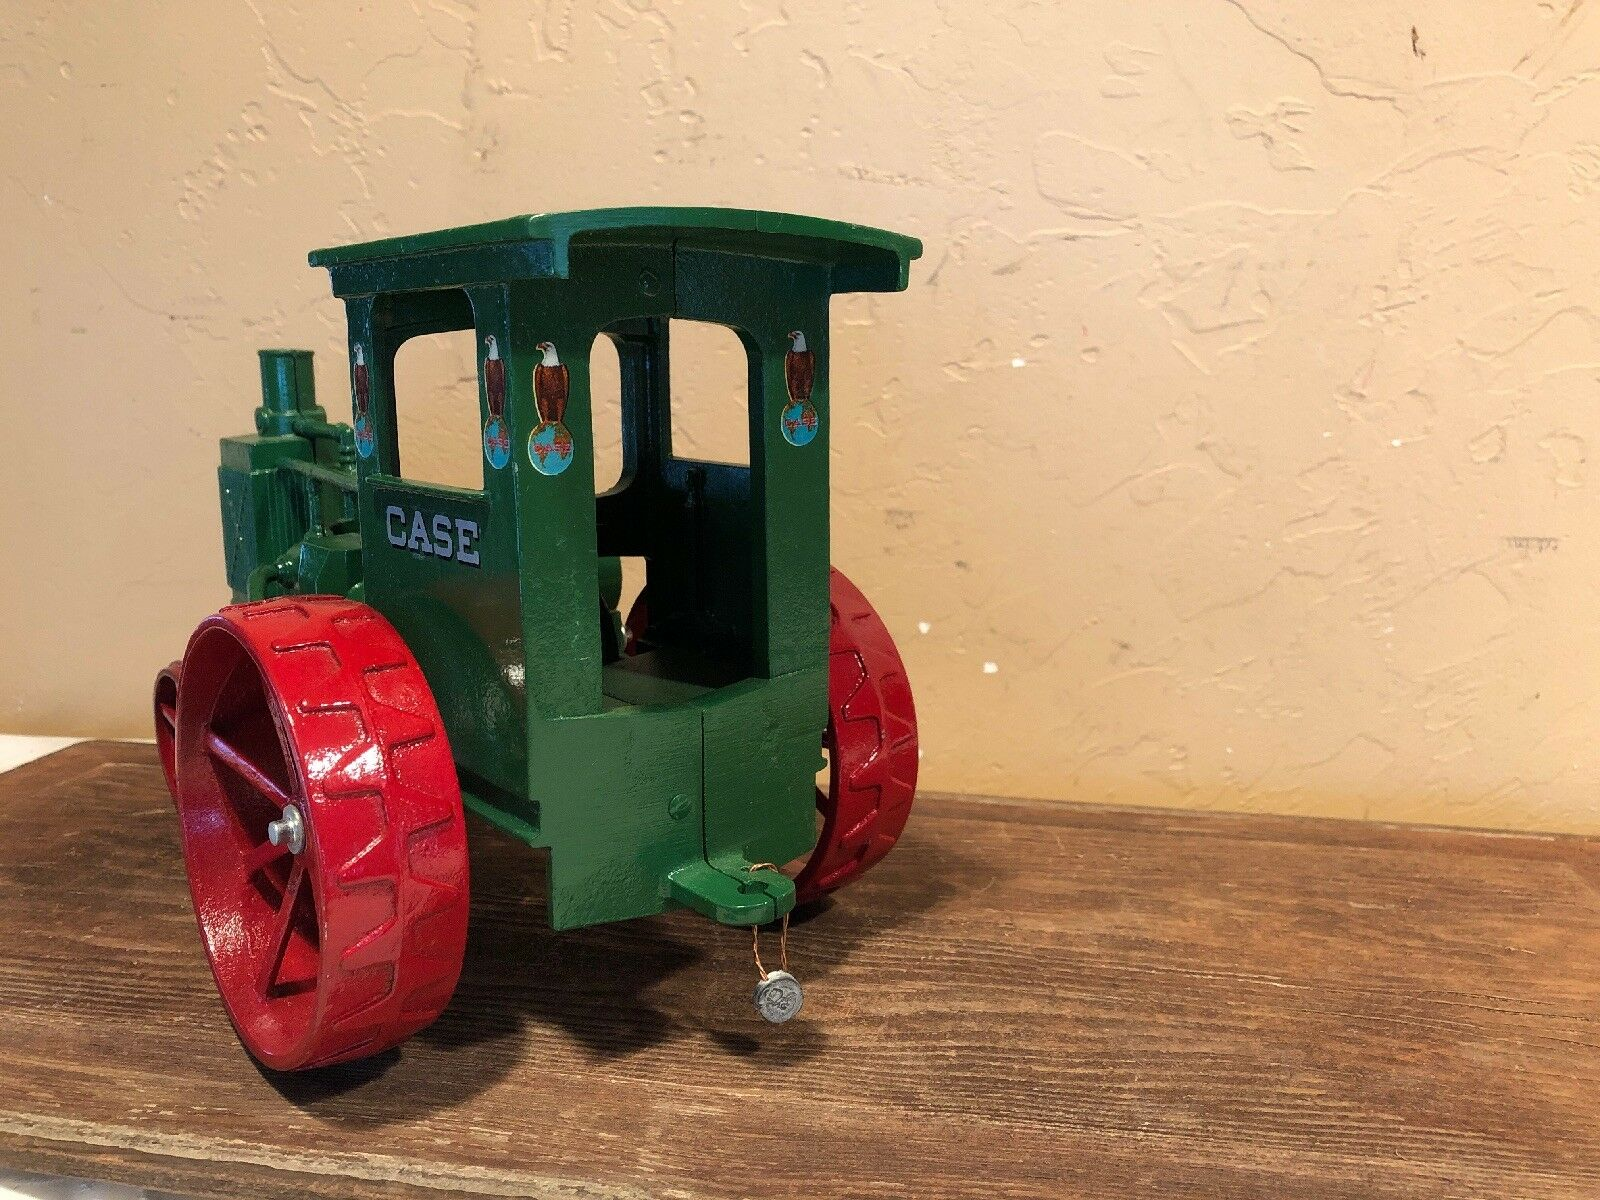 Scale Models Diecast 1 16 J. I. I. I. Case Steam Engine Toy Tractor Model 20-40 c17942